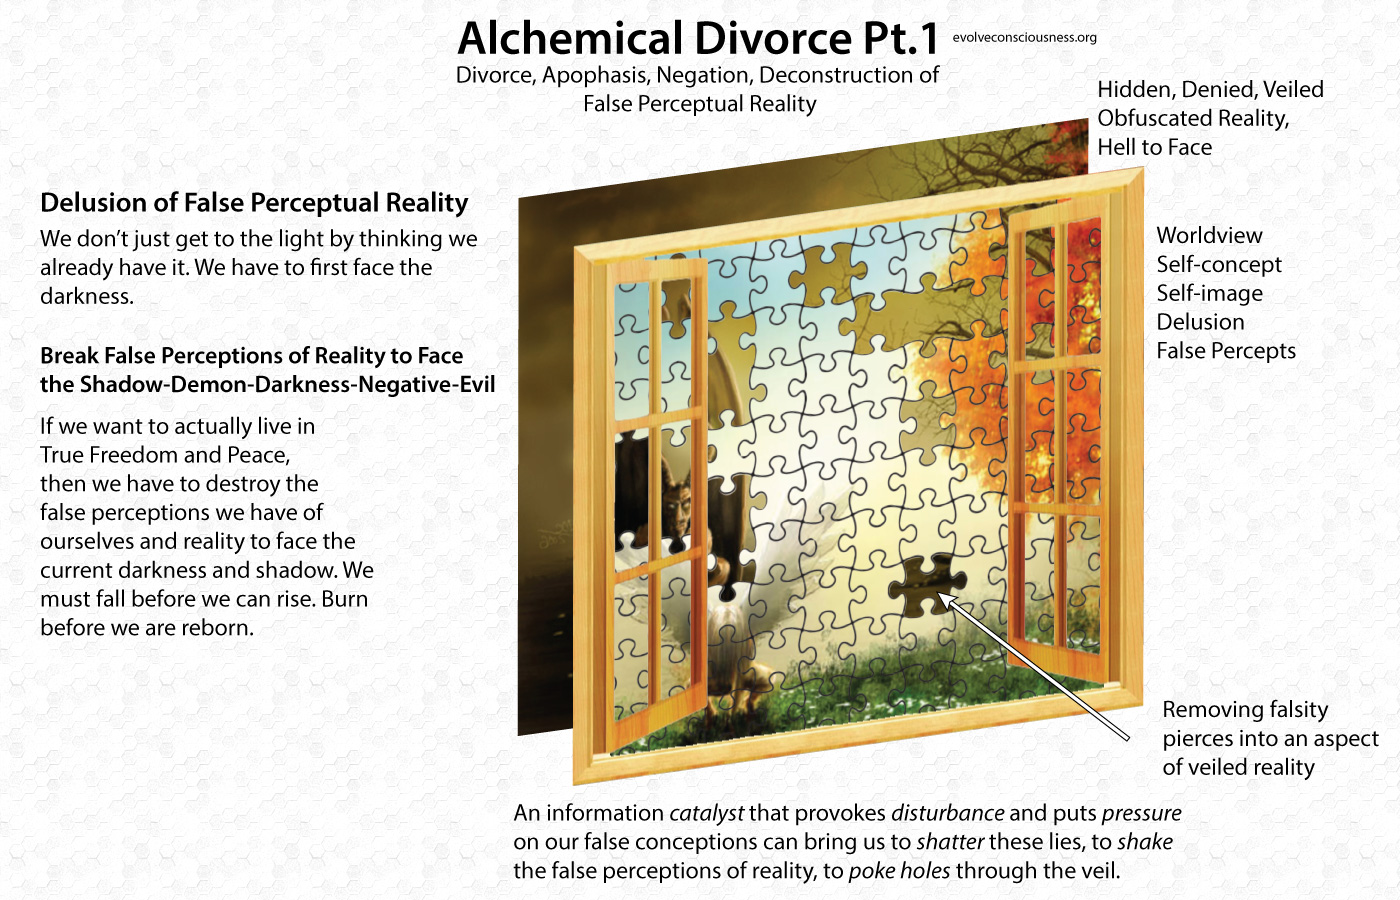 Alchemical-Divorce-Pt.1